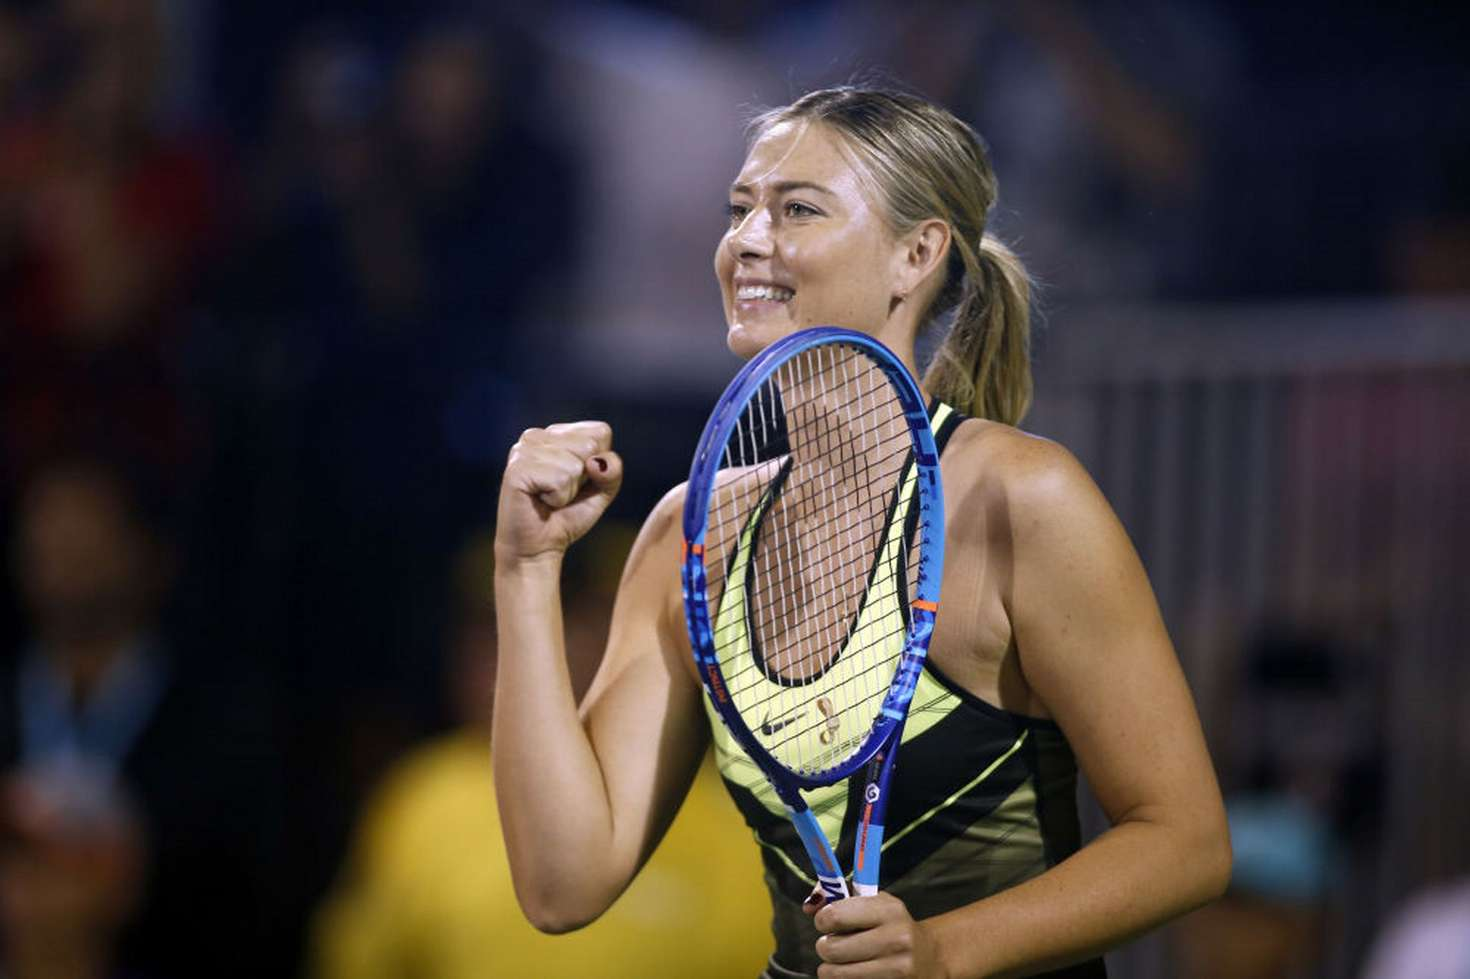 Best Maria Sharapova Smile Face Free Laptop Desktop Wallpaper Hd Background